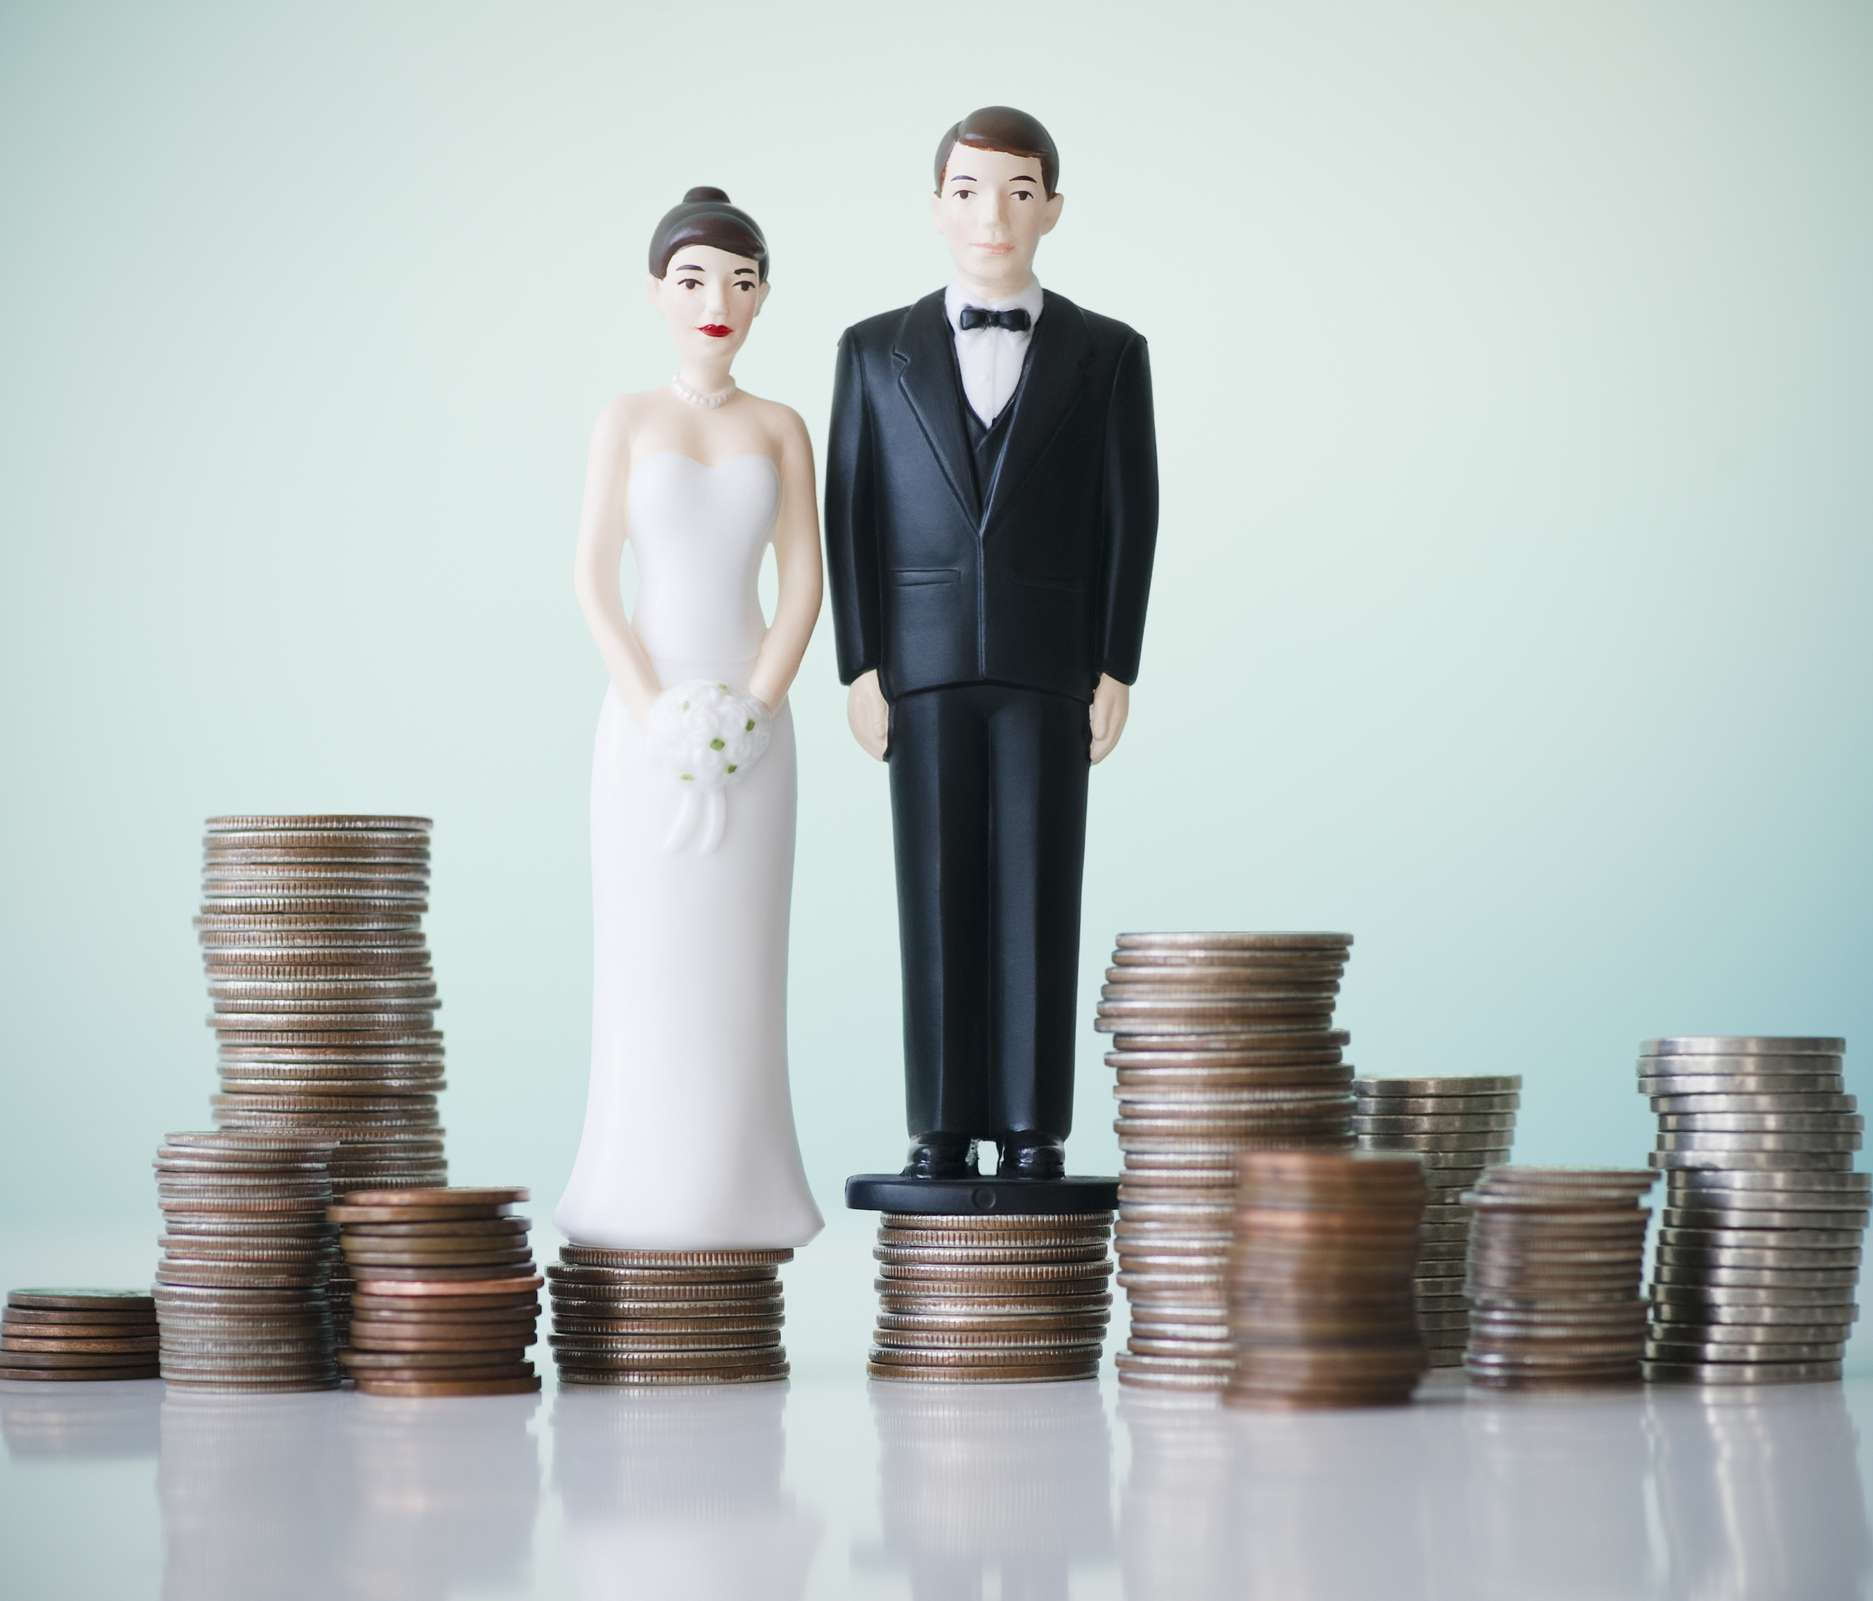 Bride and groom cake toppers on coins